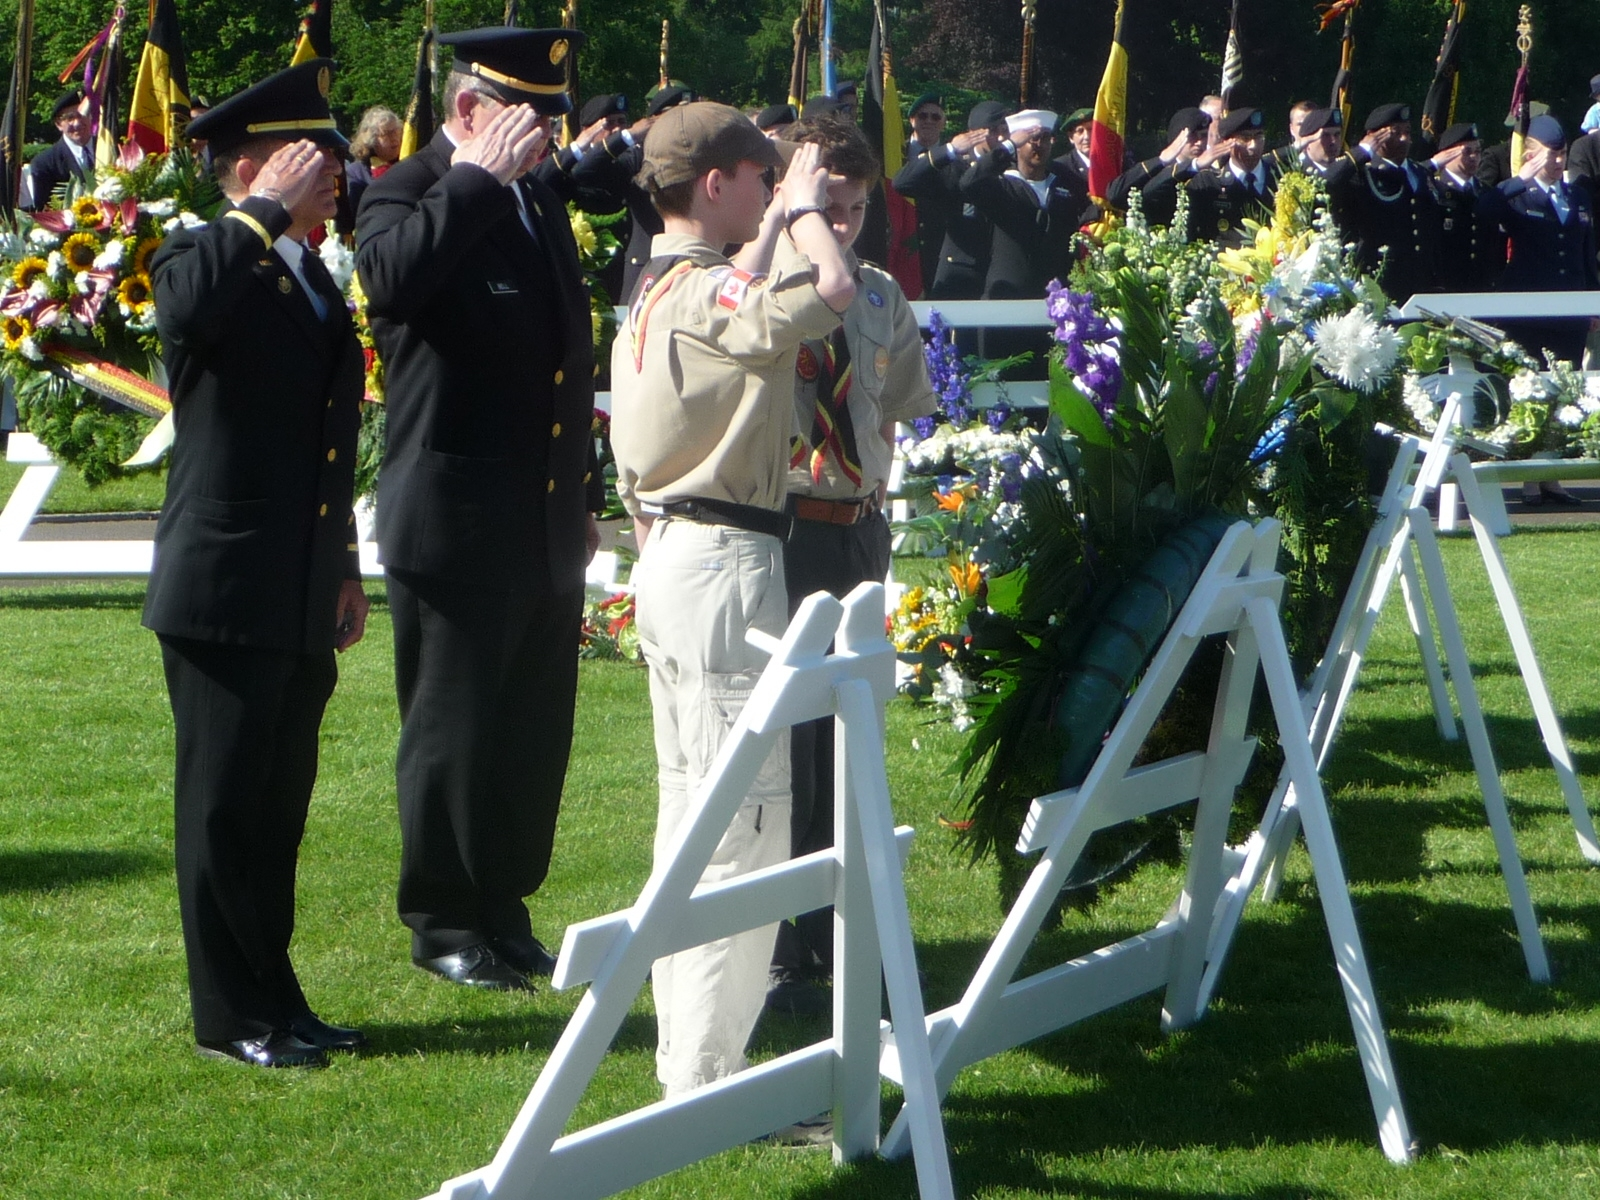 Attendees salute a wreath during the 2012 Memorial Day ceremony at Henri-Chapelle American Cemetery.